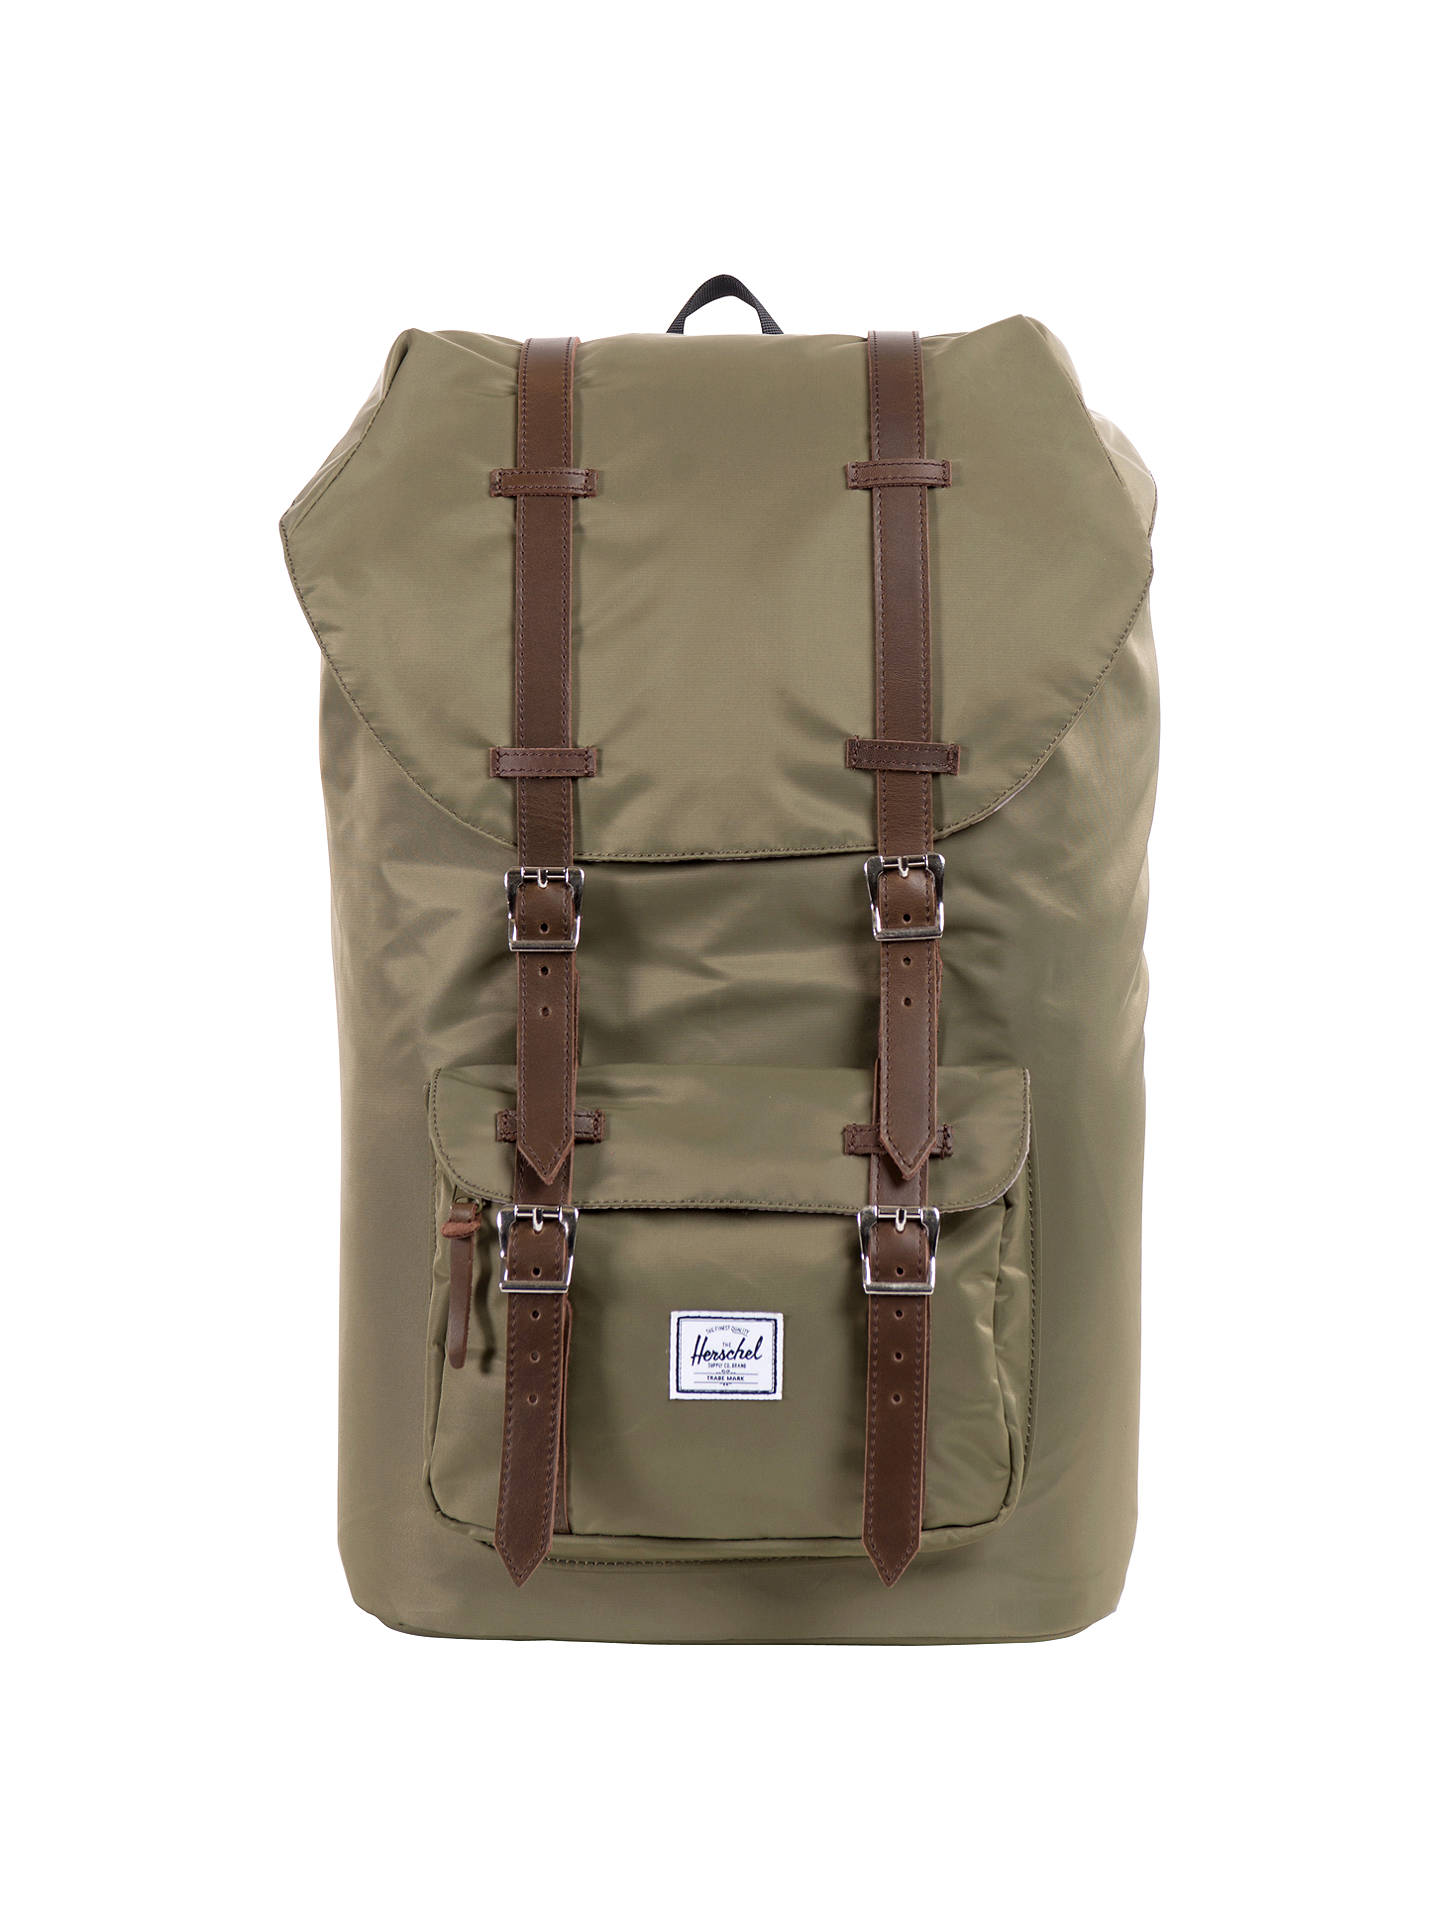 7956345a6b34 Nylon Herschel Backpack- Fenix Toulouse Handball